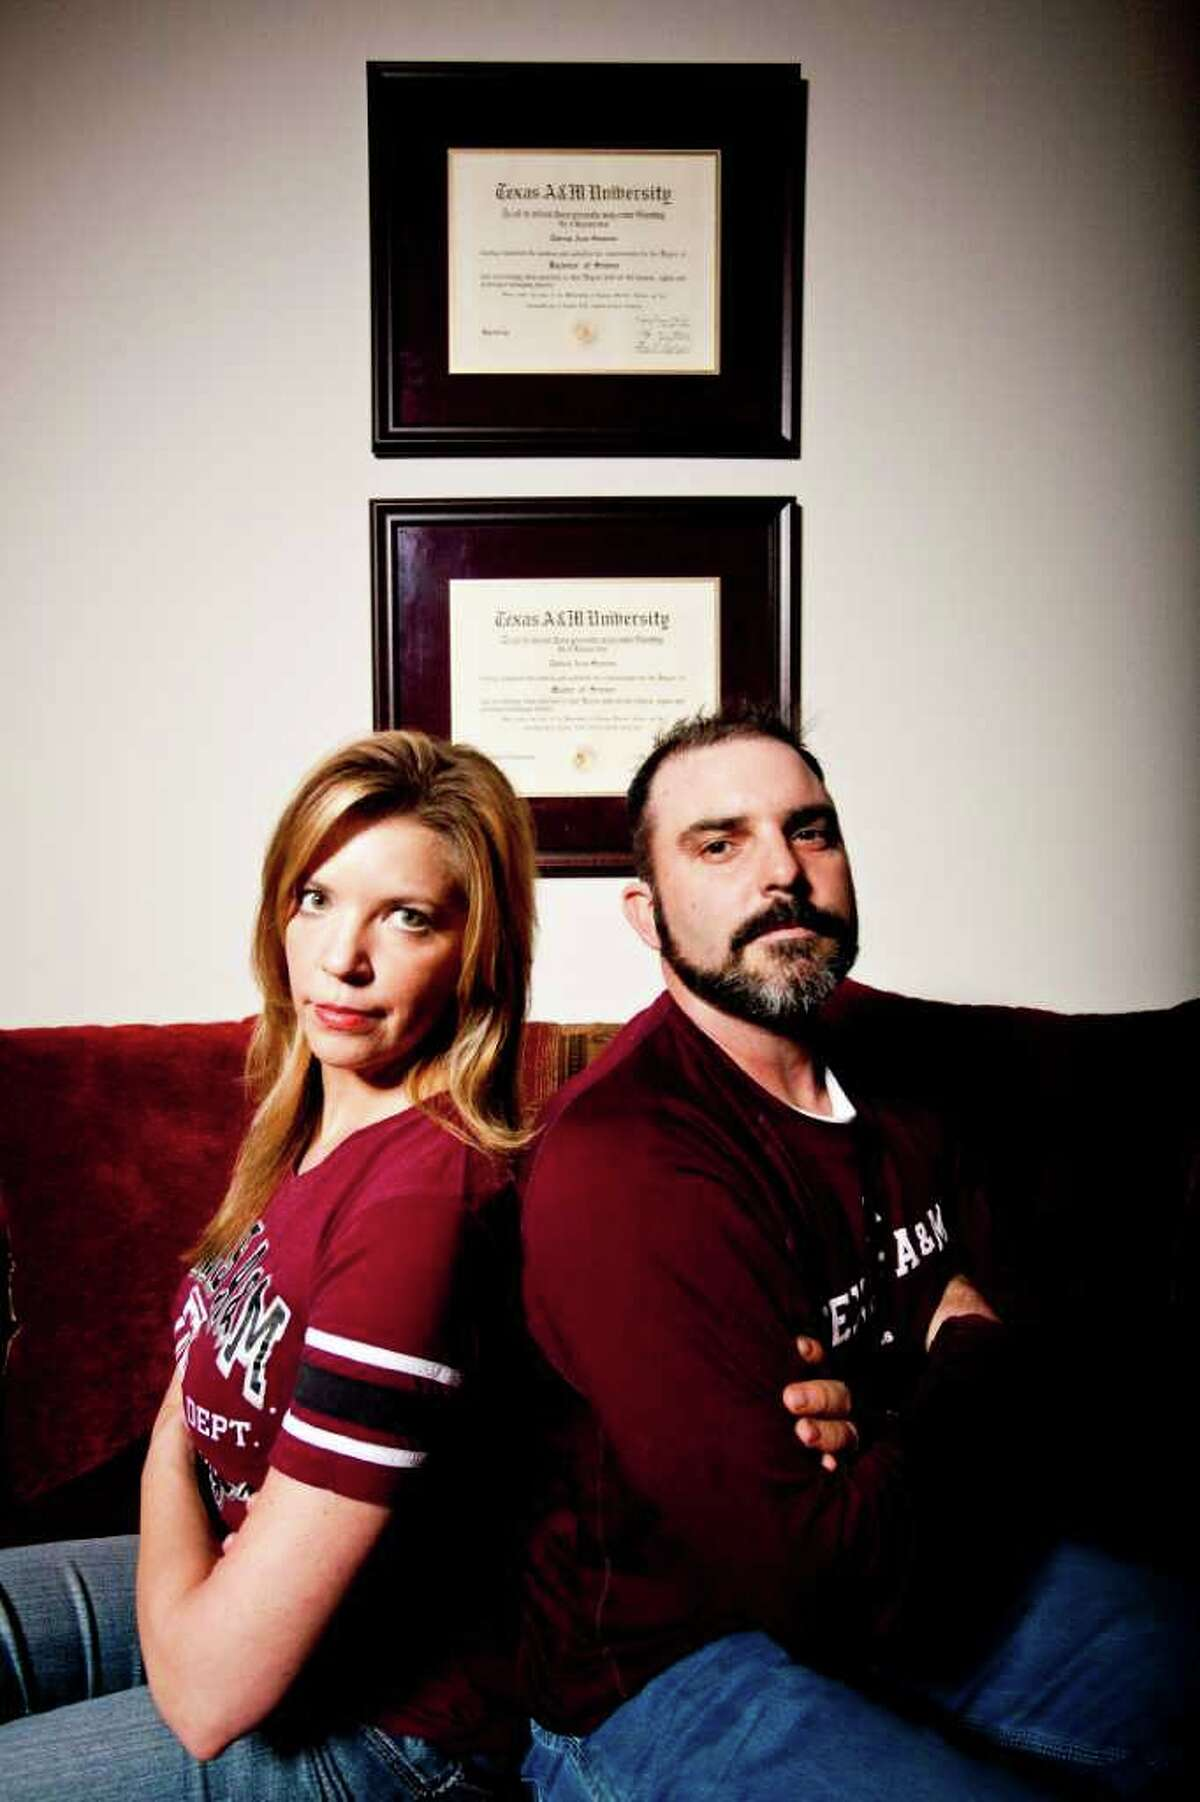 Terri Simmons-Johnson, left, and John Johnson, both A&M graduates, are in debate over whether or not the A&M dance team should be allowed to dance on Kyle Field. Terri was a founding member of the dance team in the early 90's and thinks the team should be allowed to dance on the field. Her husband Jon is against the idea.